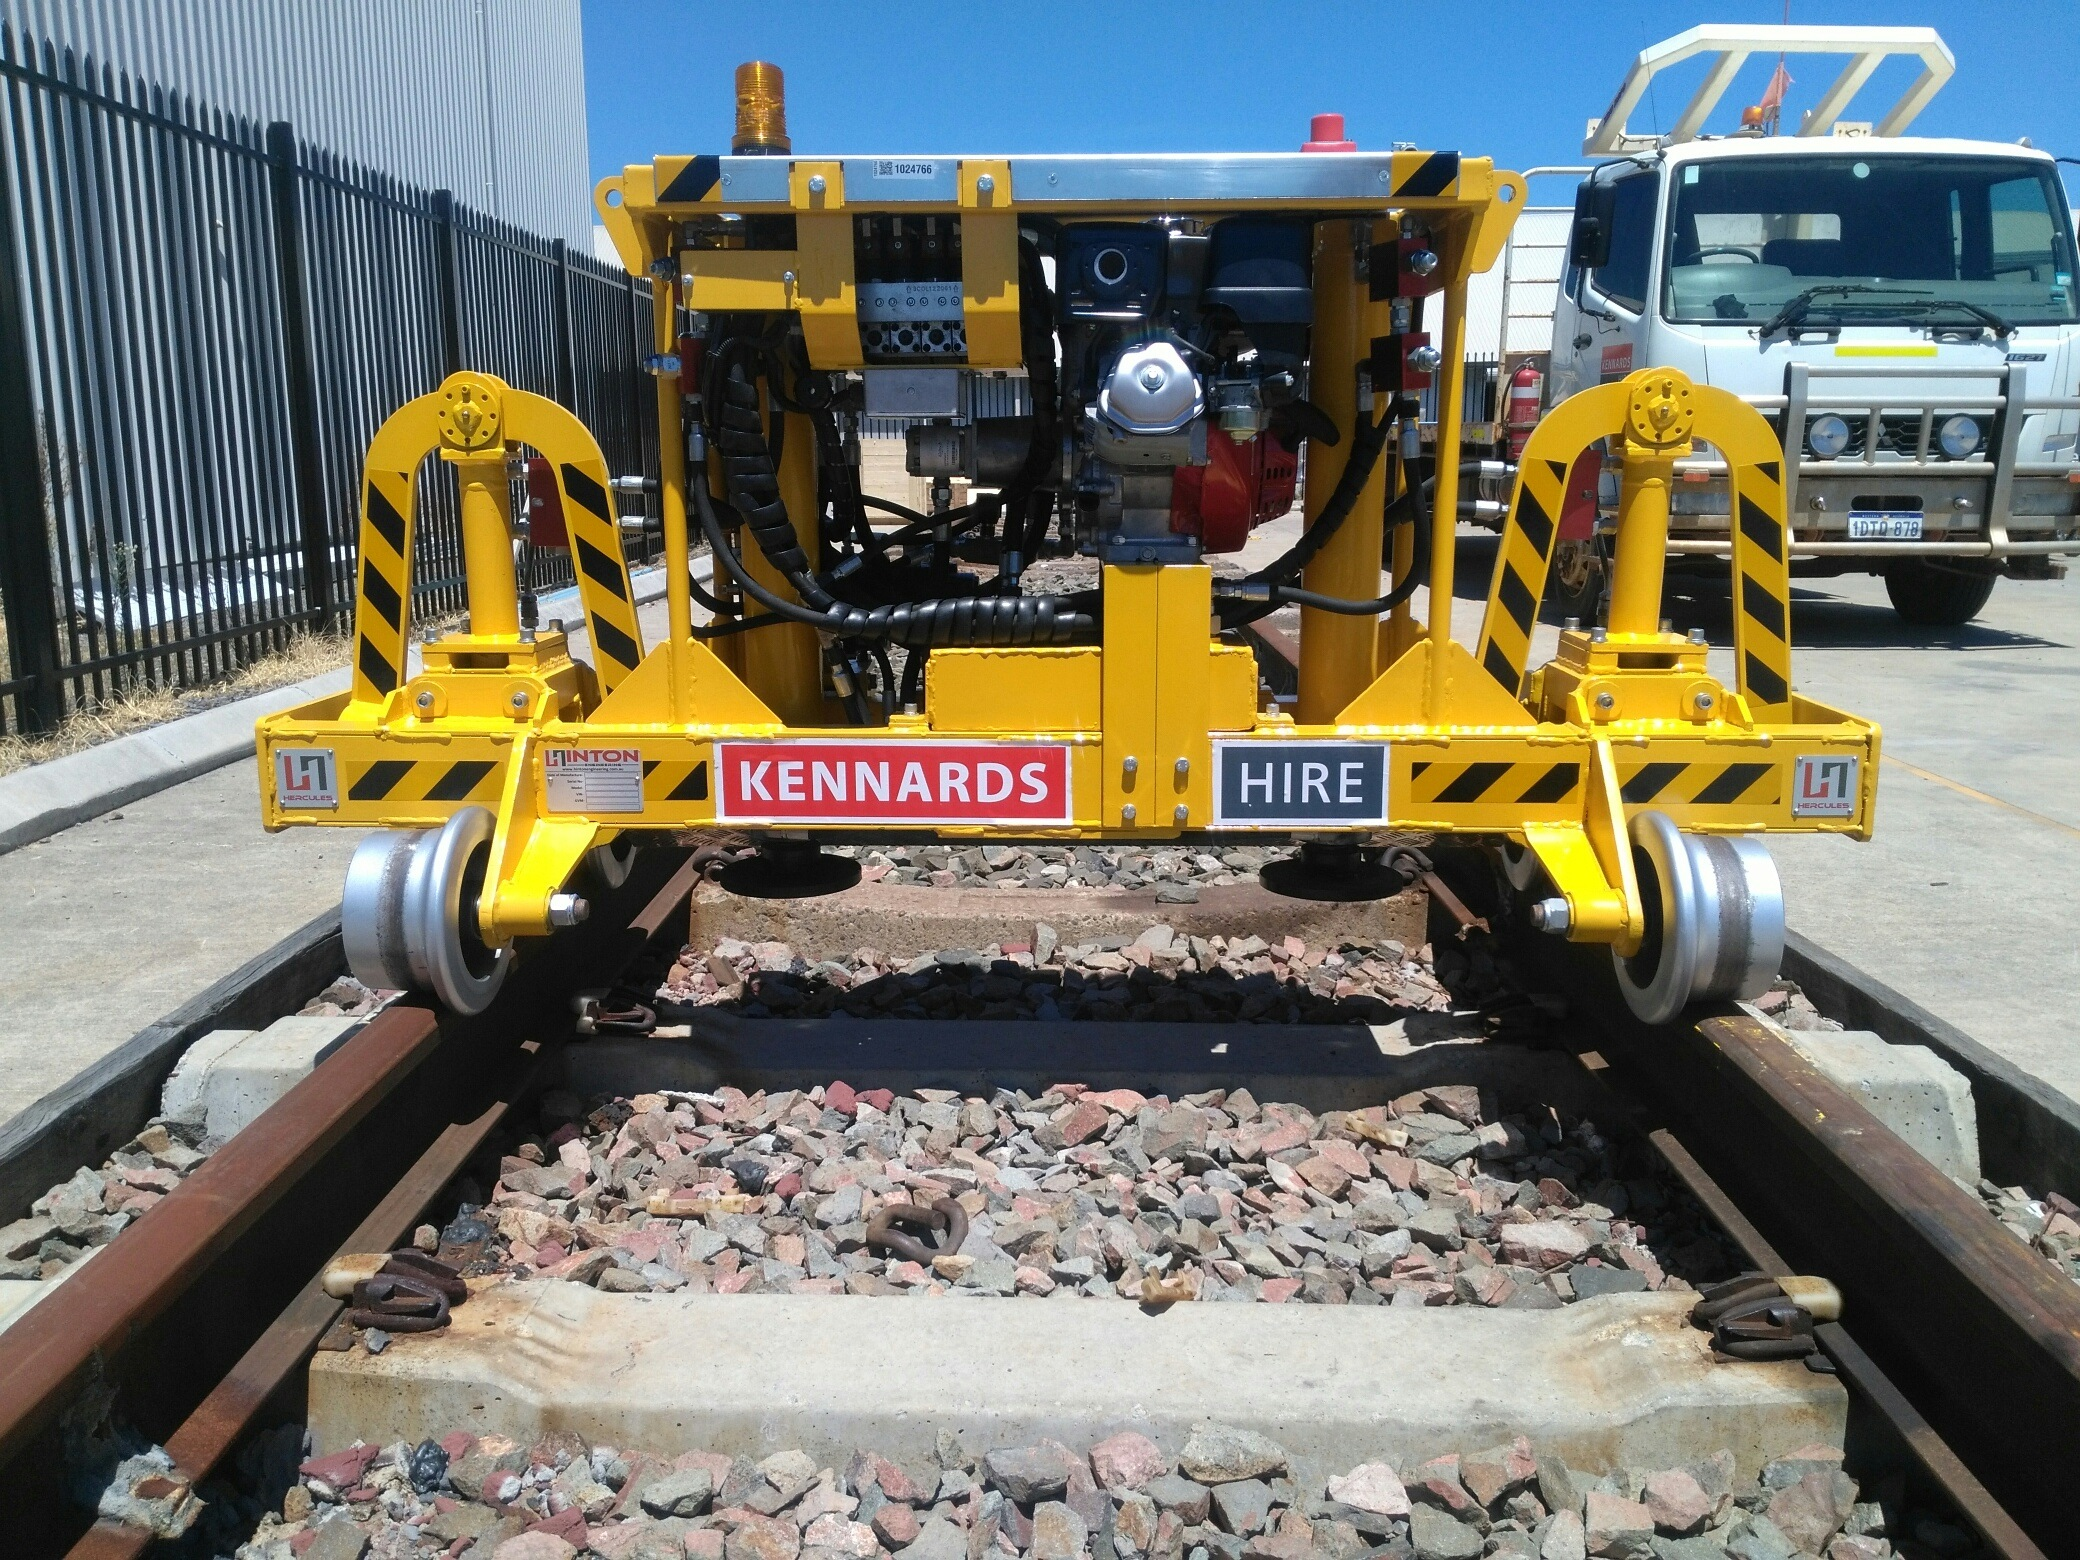 Making track jacking easy with the Self-Propelled Track Jack